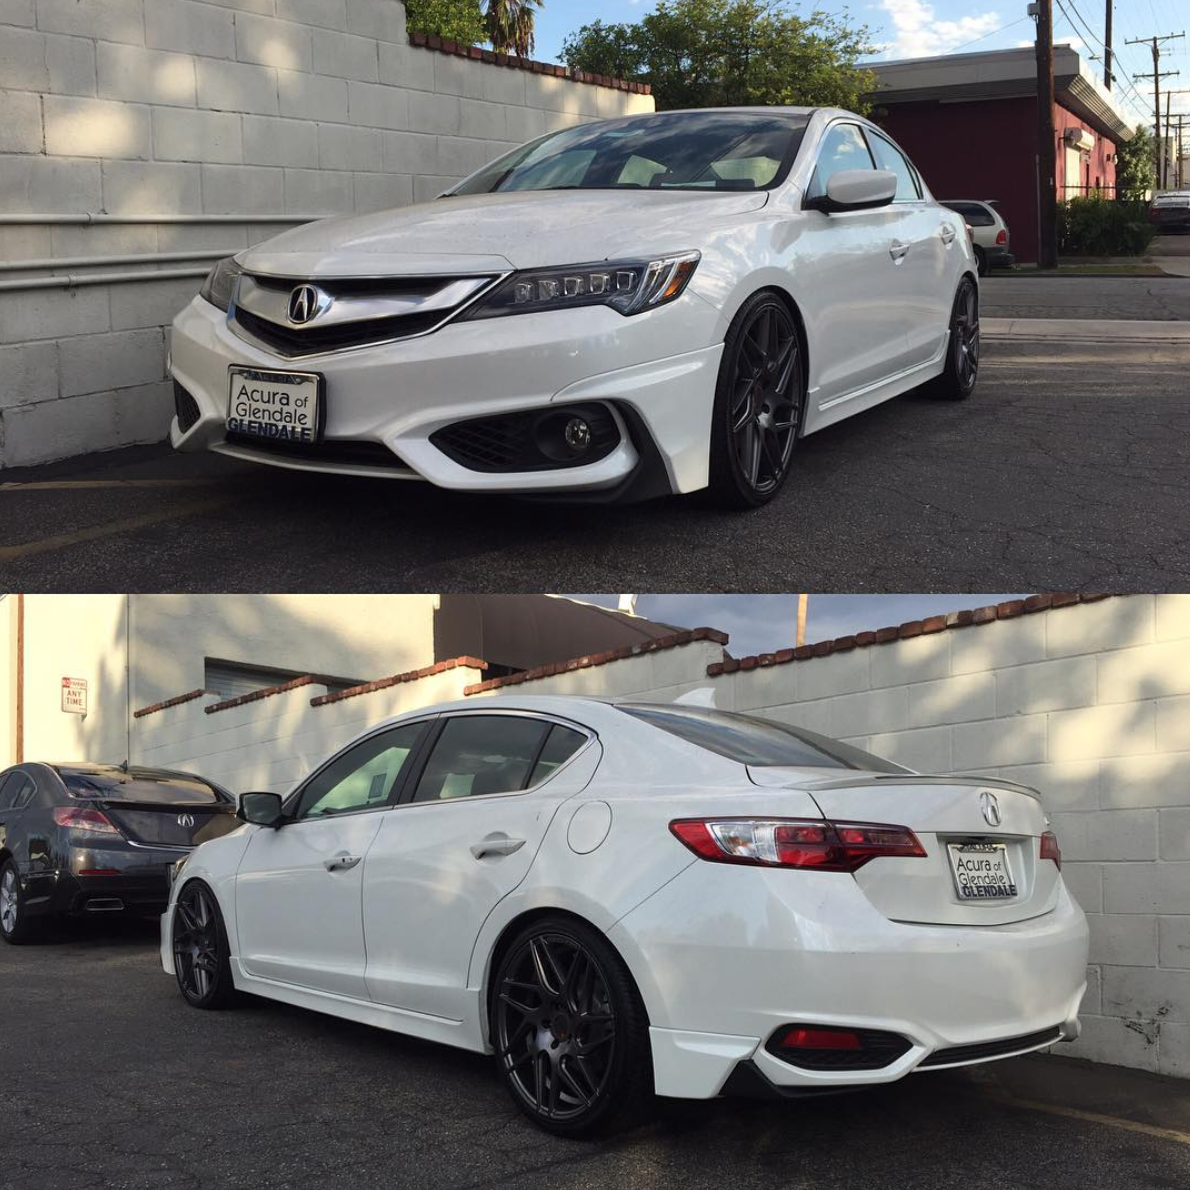 2016 ILX Lowering Springs(informative )